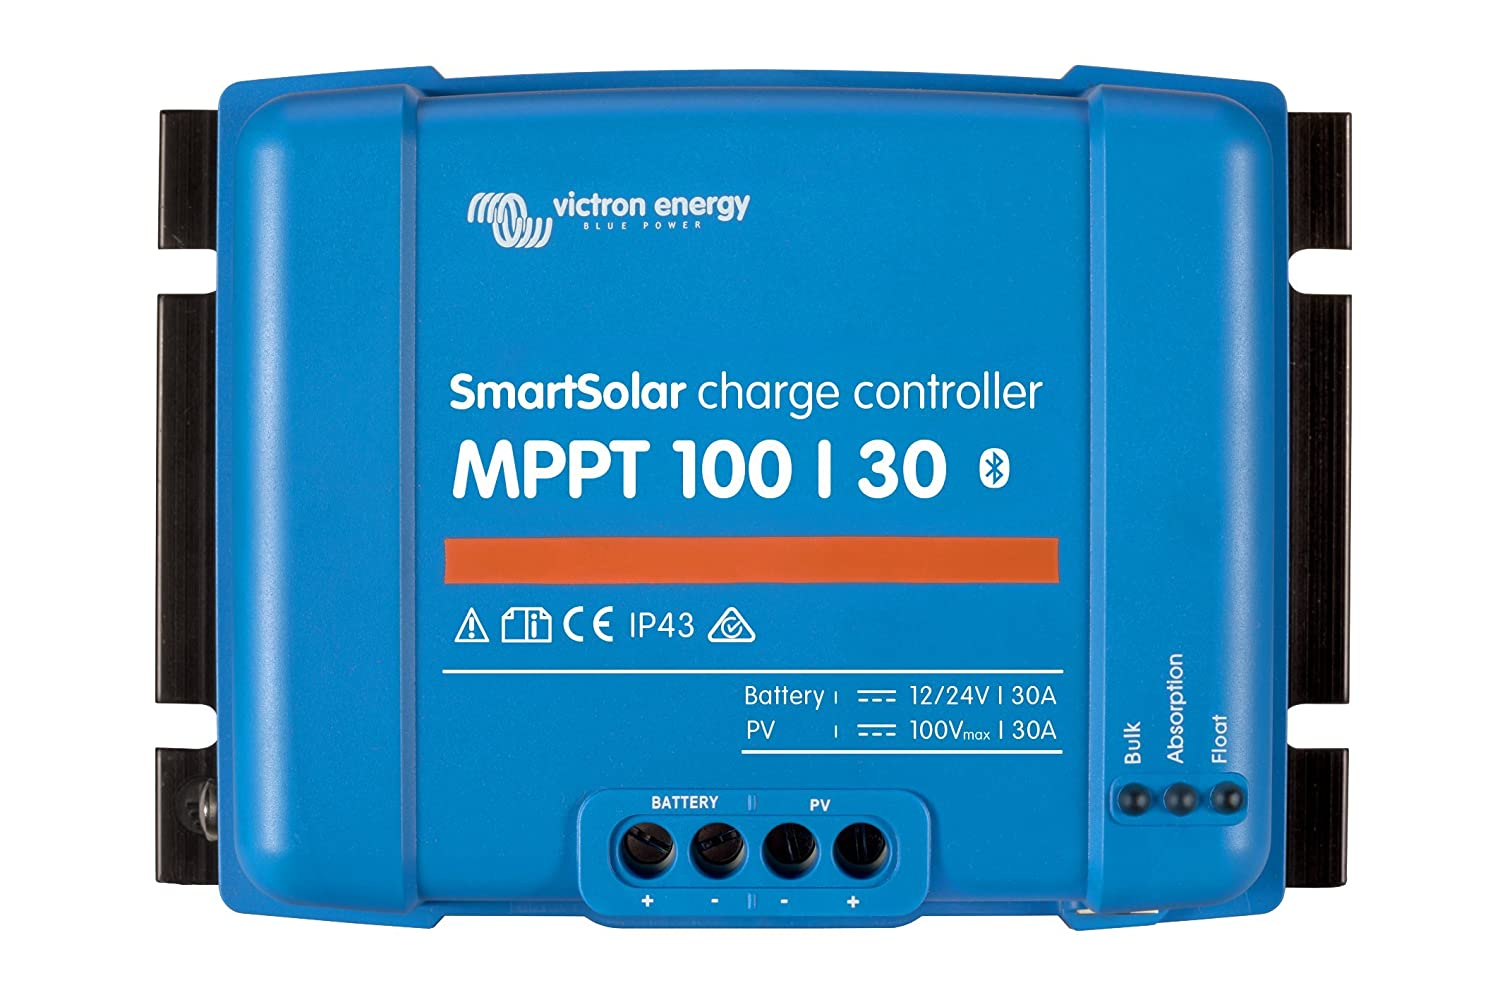 Victron Energy BlueSolar MPPT 100 30 Charge Controller